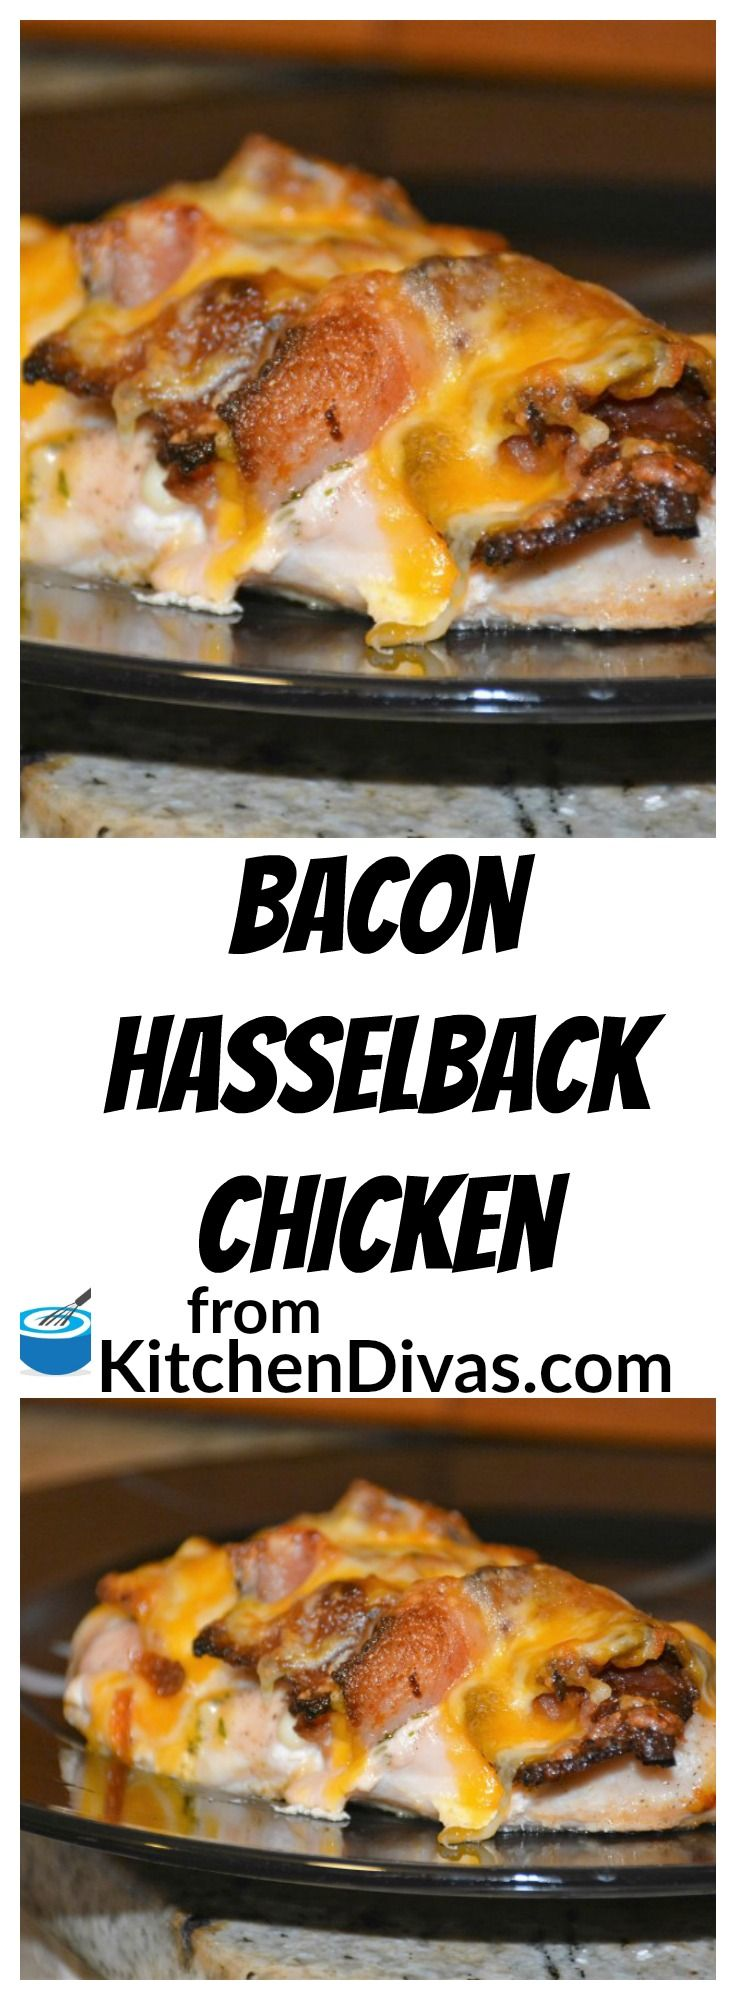 This recipe for Bacon Hasselback chicken is another delicious version of Hasselback chicken that we make. This is Ken's favorite version. I know it is because he loves bacon. He truly believes that bacon always makes everything taste better. We usually use cheddar cheese or a mozzarella cheddar blend but you can use any cheese you want. We also don't always include diced onions, mushrooms and butter but it is worth trying at least once! Delicious either way!